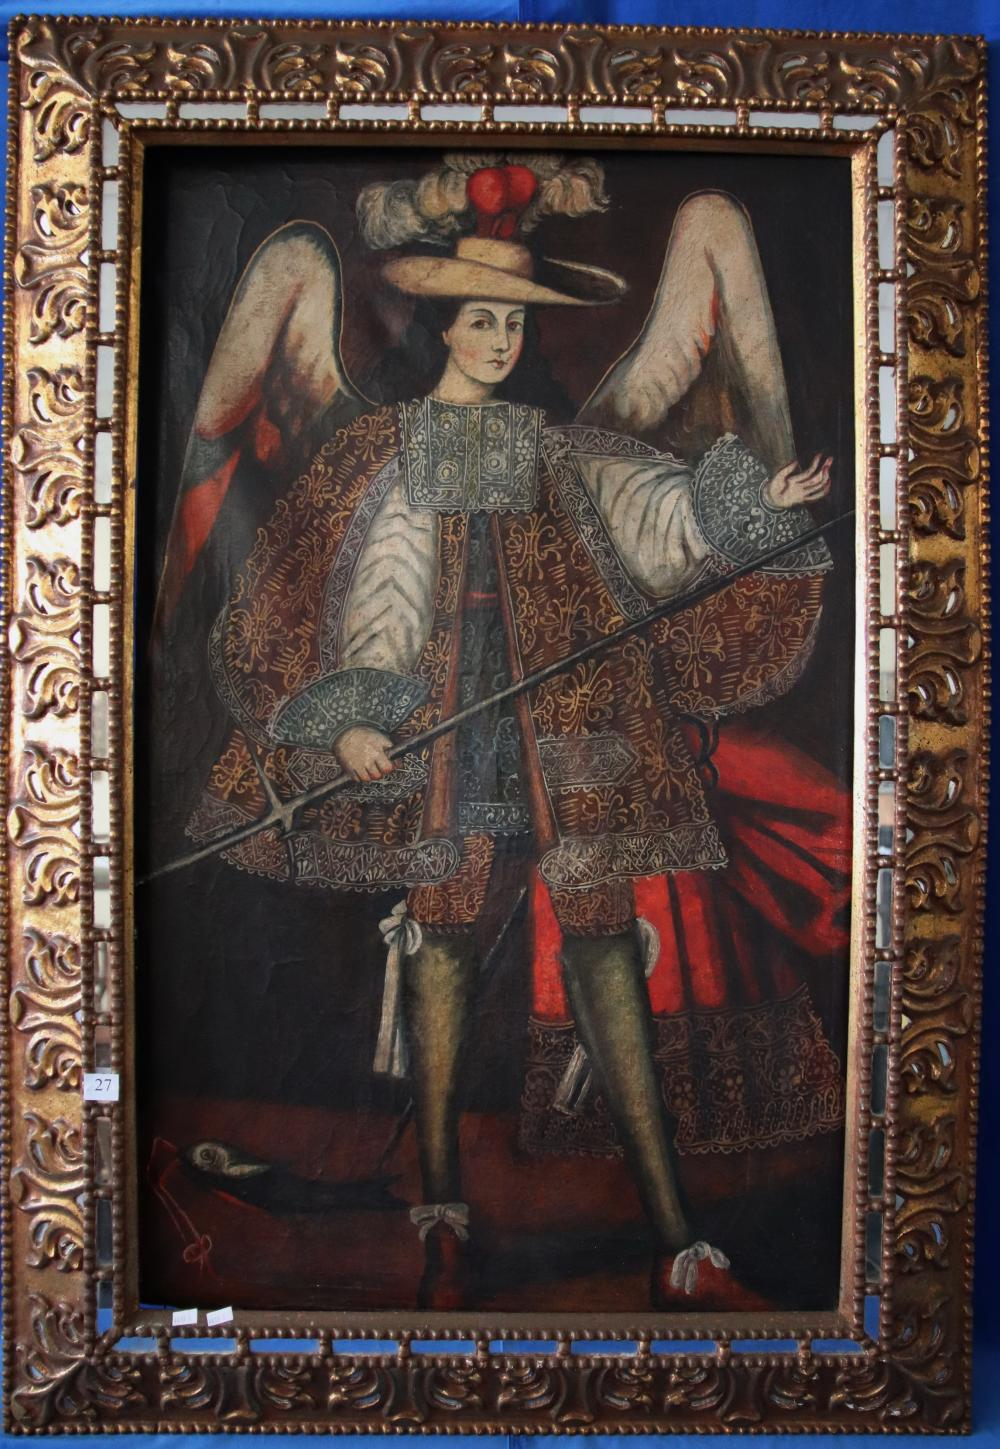 CUZCO SCHOOL, UNSIGNED, ANGEL DRESSED AS 17TH CENTURY CONQUISTADOR IN COURT DRESS, OIL ON CANVAS 113 X 35 FRAME 140 X93 CM IN CARVED GOLD AND MIRRORED FRAME (MINOR DAMAGES TO MIRROR)